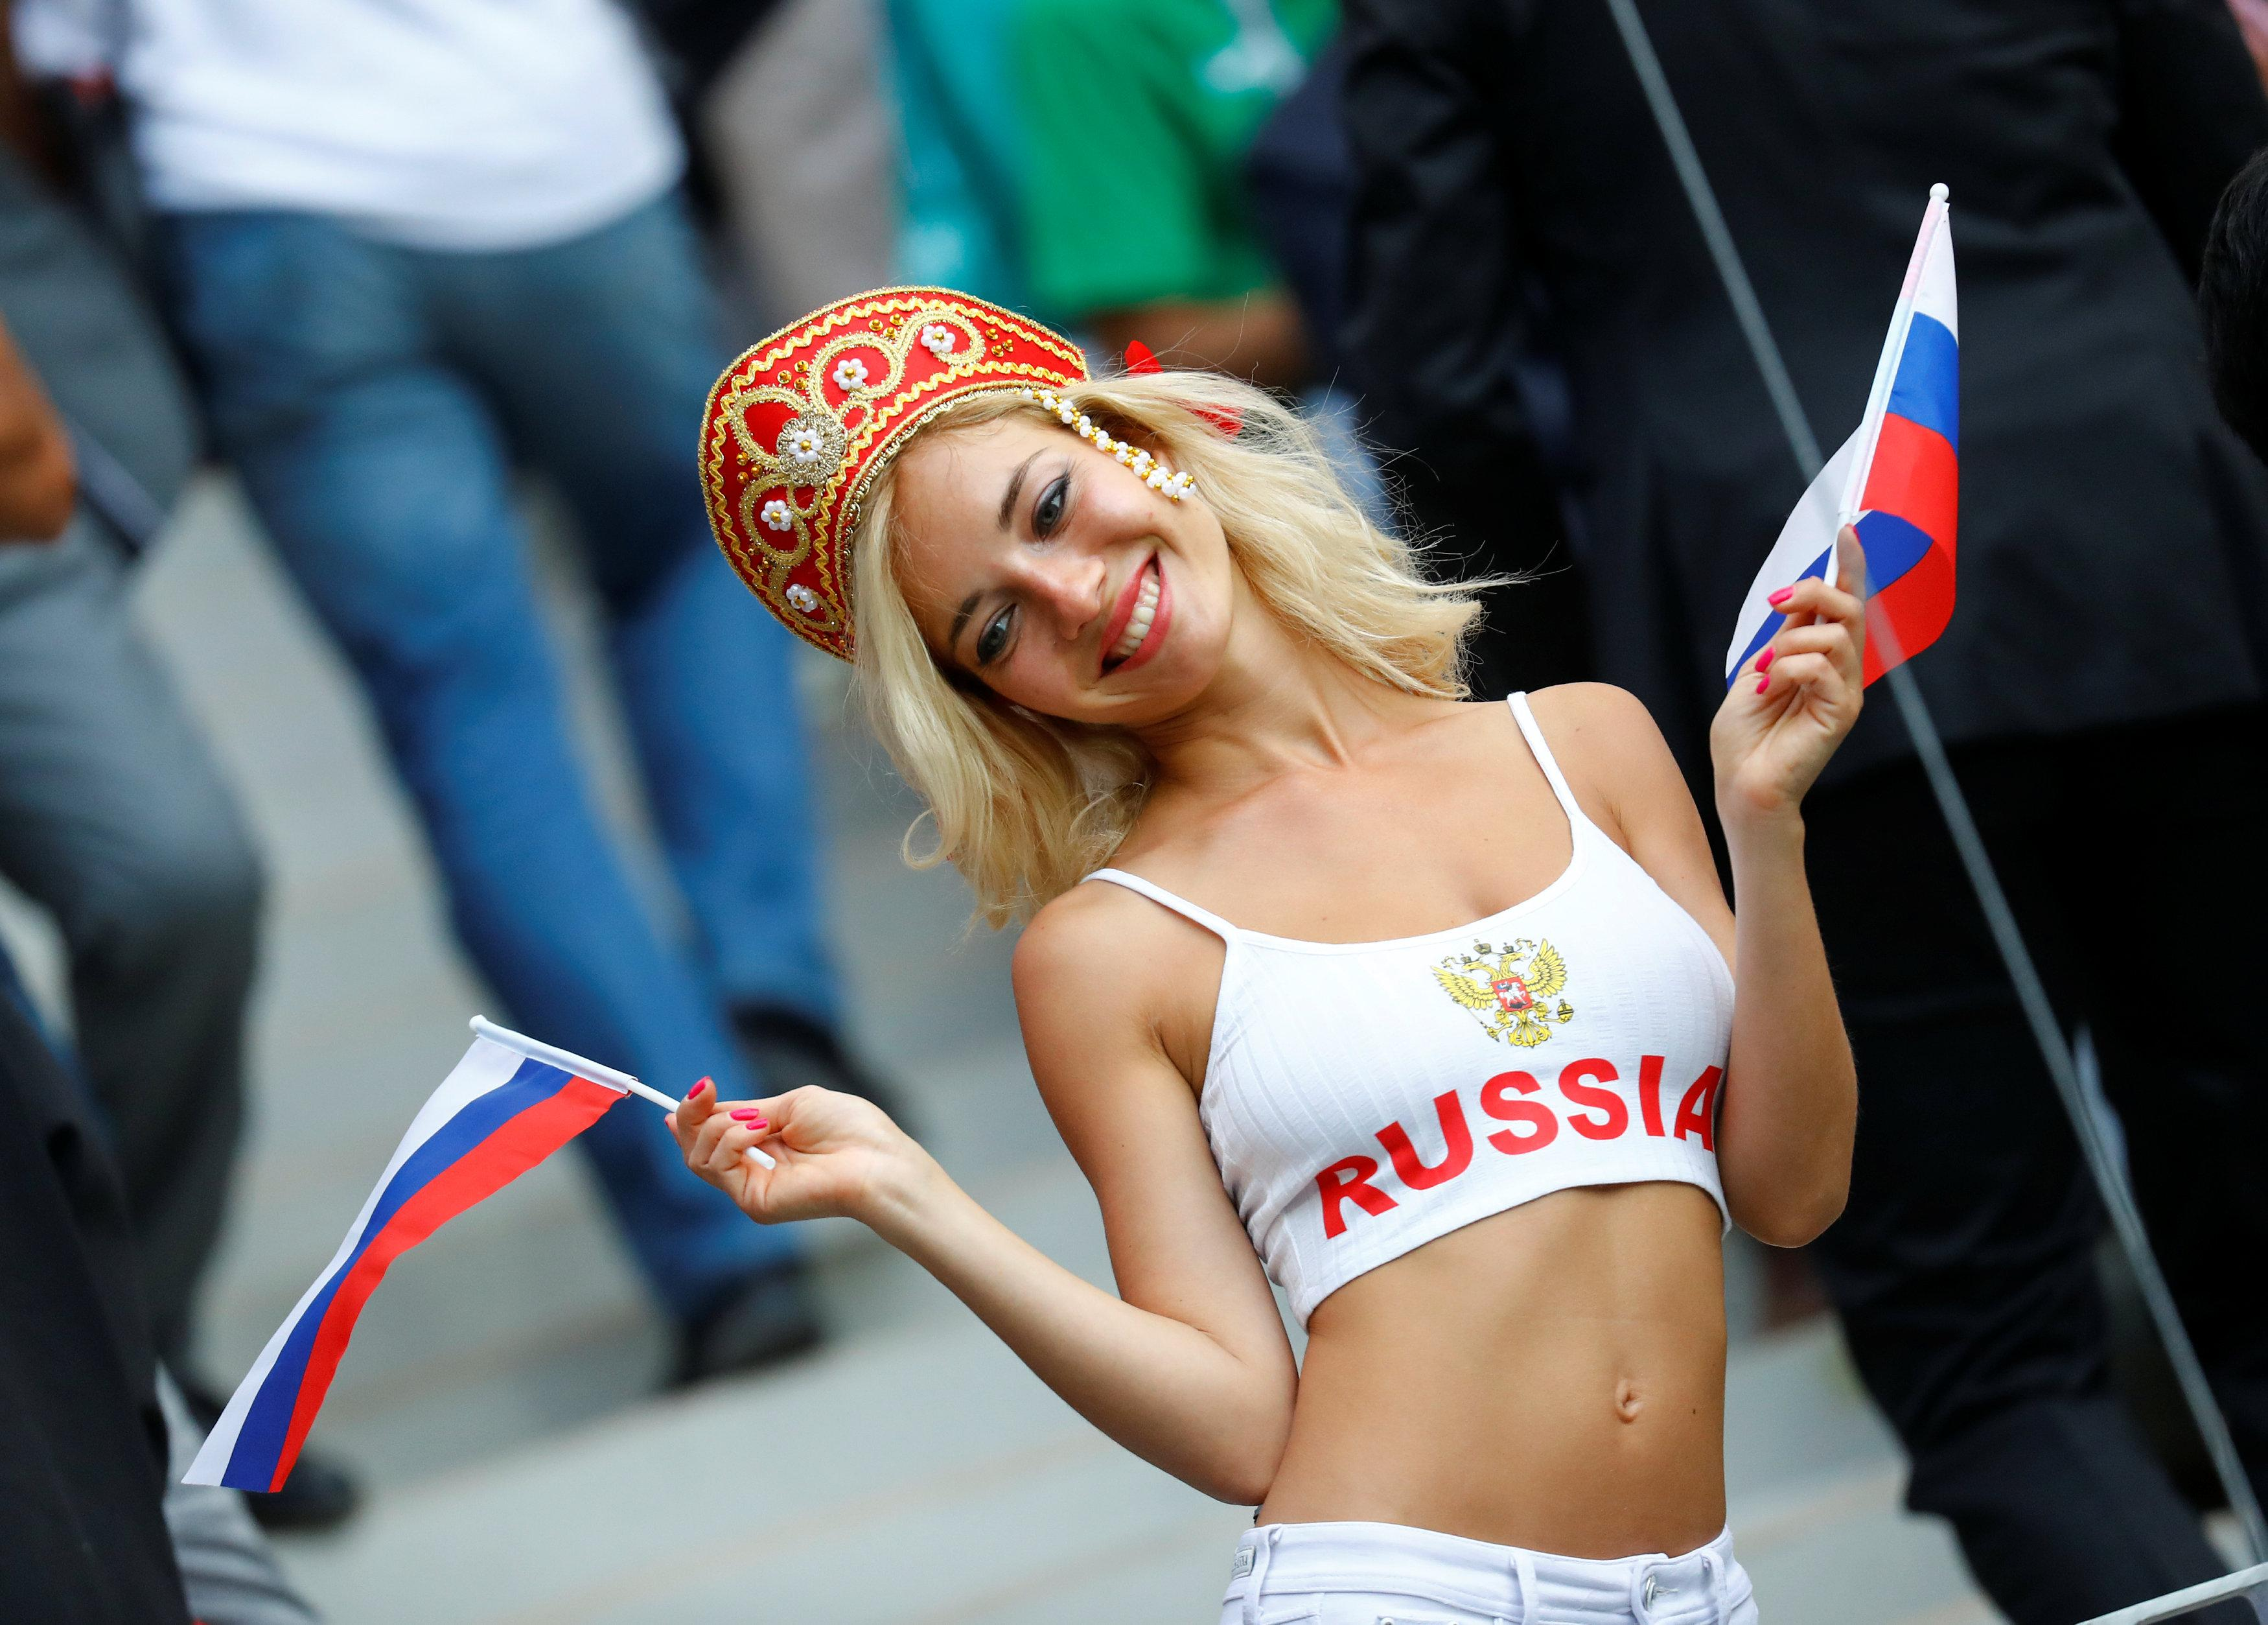 Fans stole the show as Russia beat Saudi Arabia 5-0